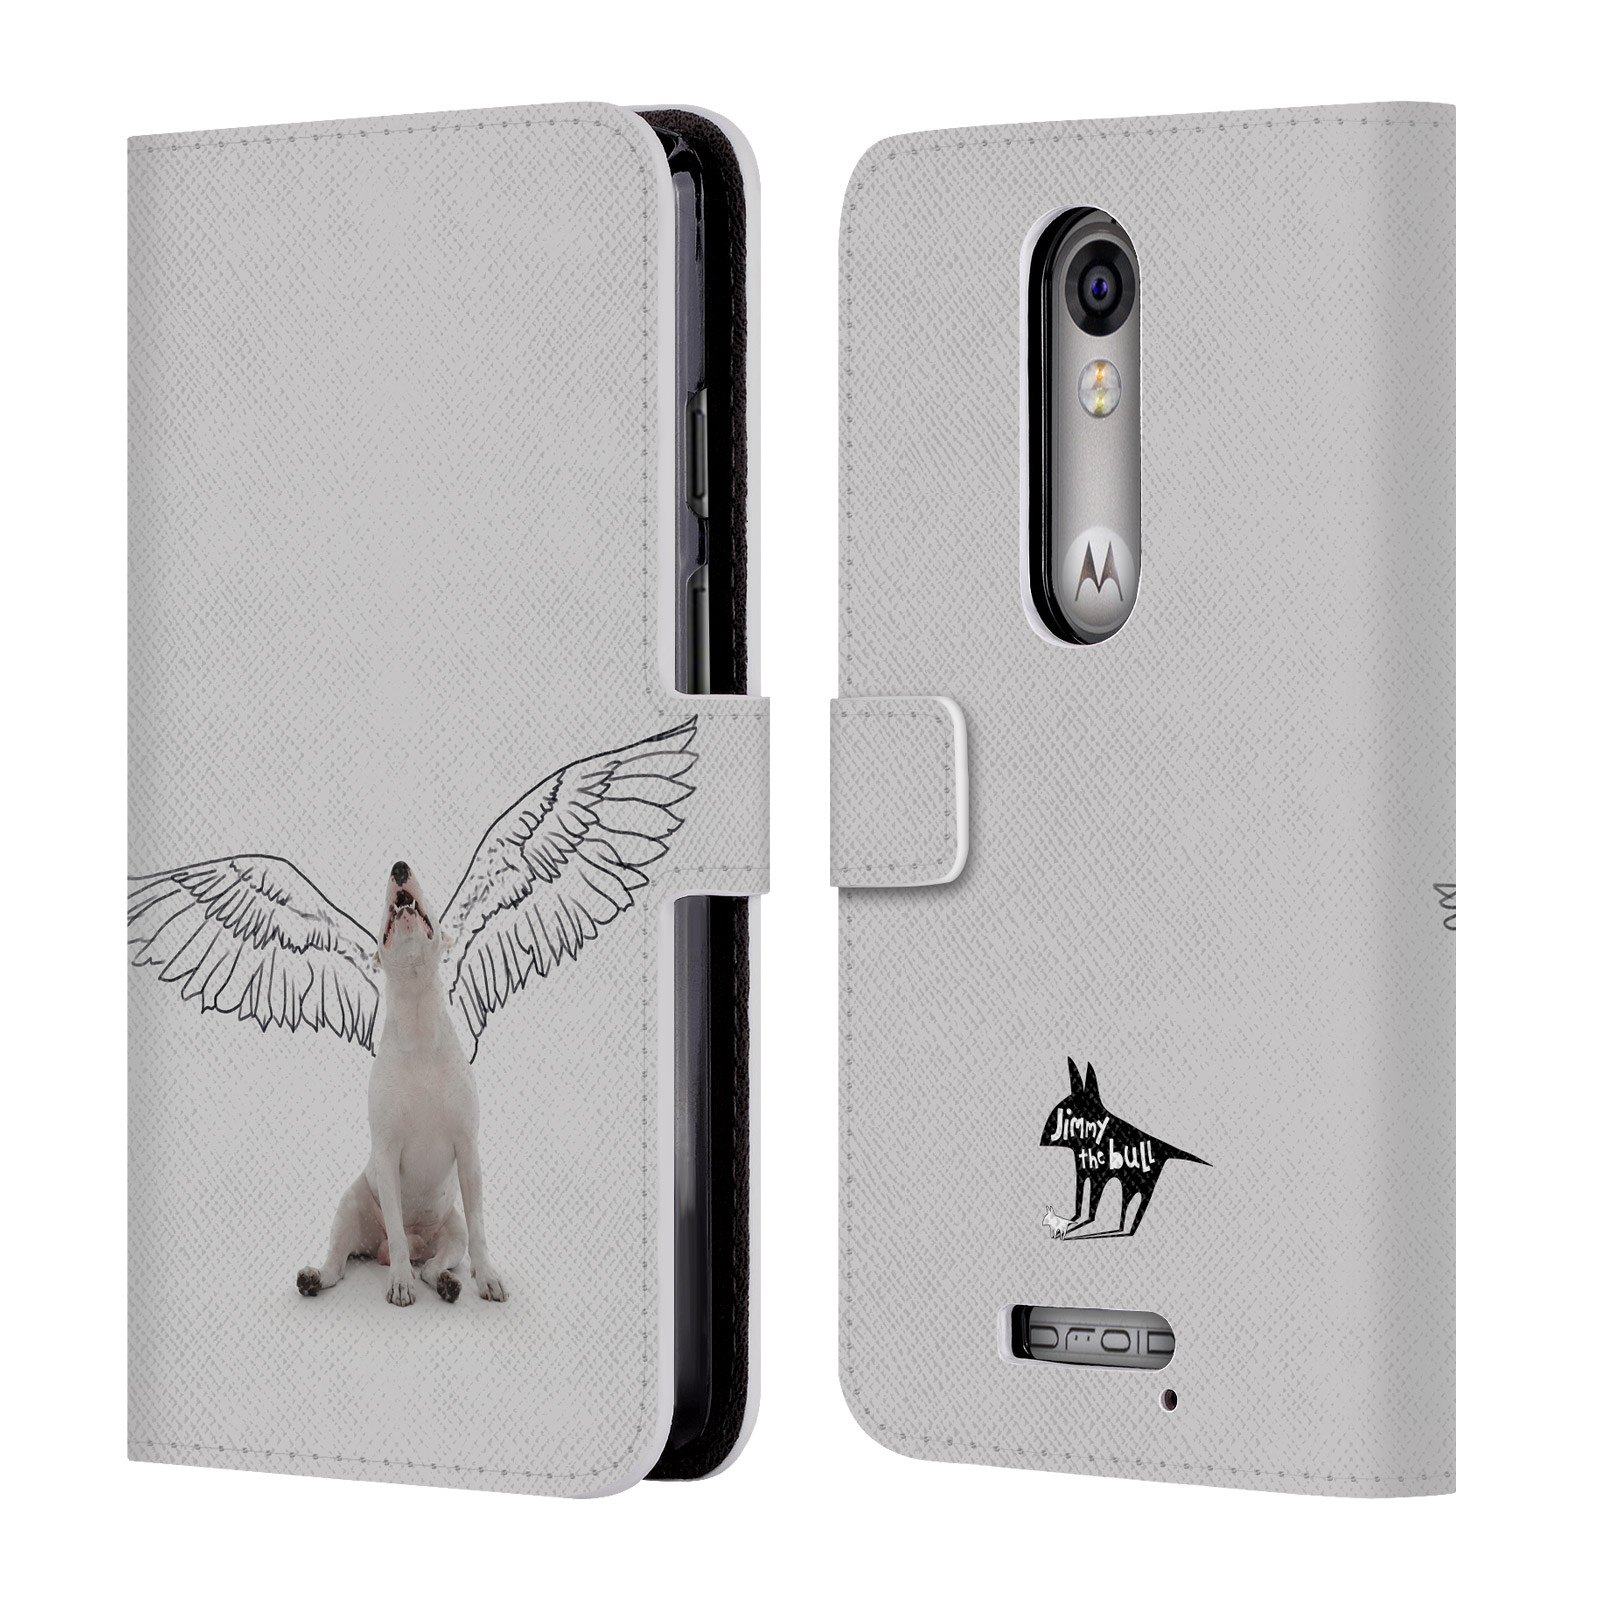 OFFICIAL-JIMMY-THE-BULL-DOODLES-2-LEATHER-BOOK-WALLET-CASE-FOR-MOTOROLA-PHONES-2